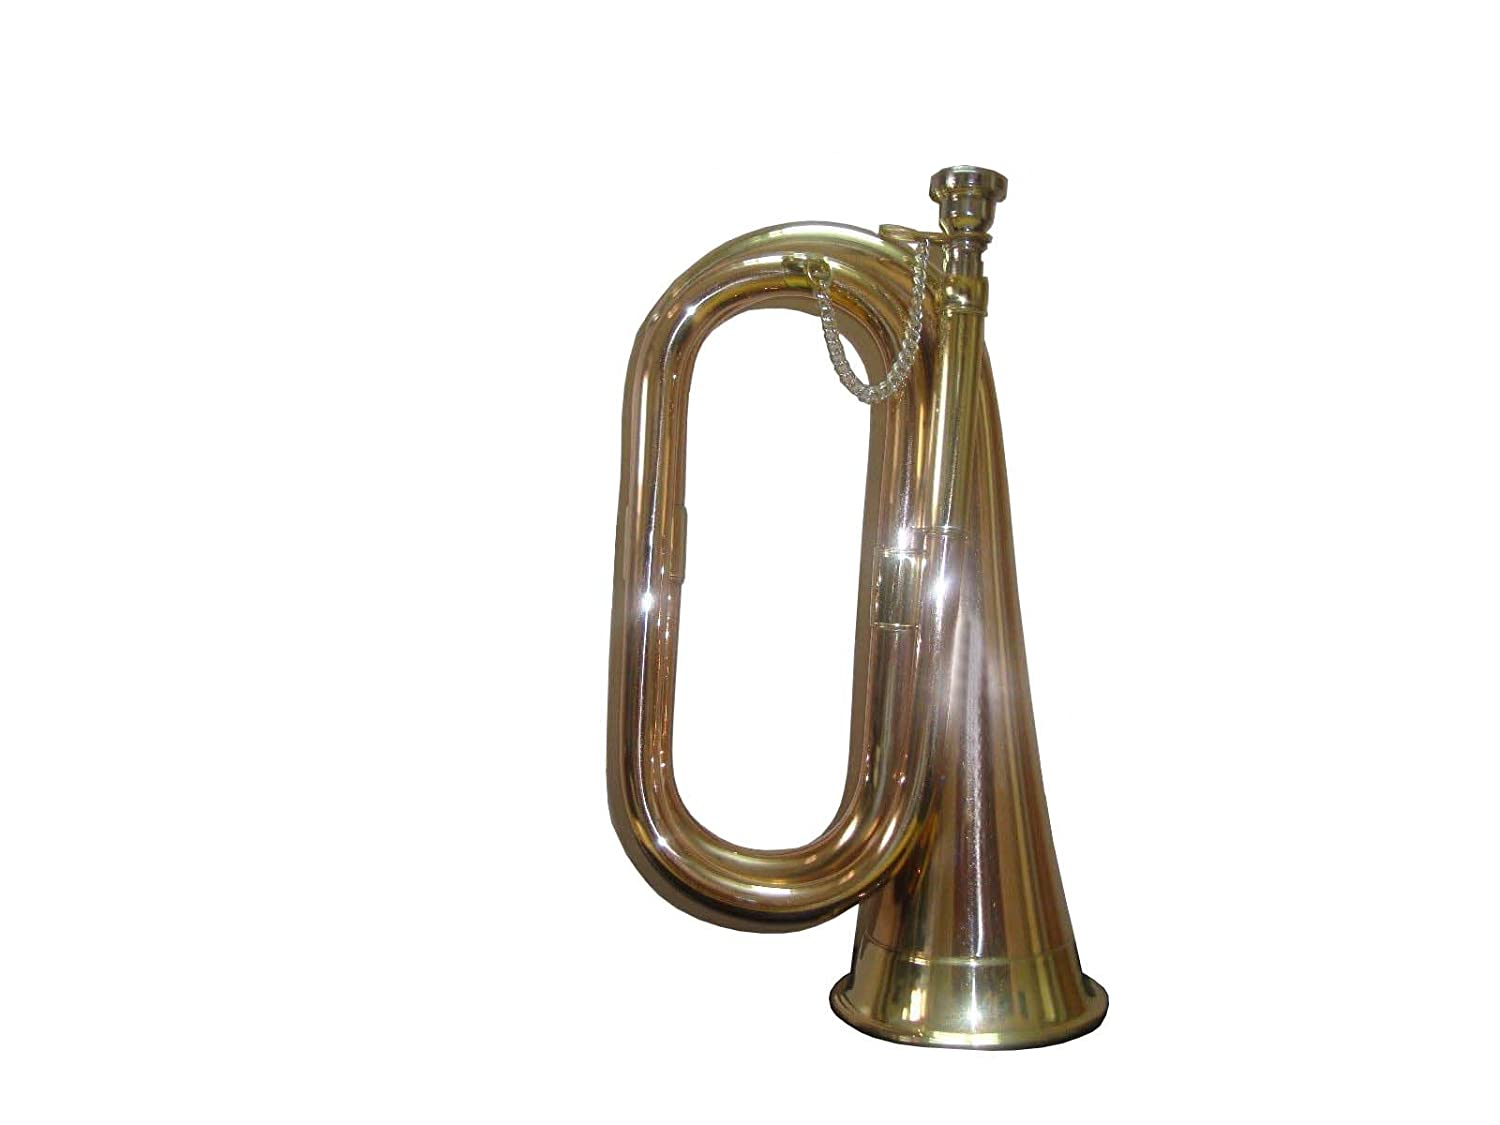 TOP GRADE QUALITY CAVALRY BUGLE CIVIL WAR WITH COPPER AND BRASS FINISH EXCELLENT MUSICAL INSTRUMENT shry013 Shreyas.co